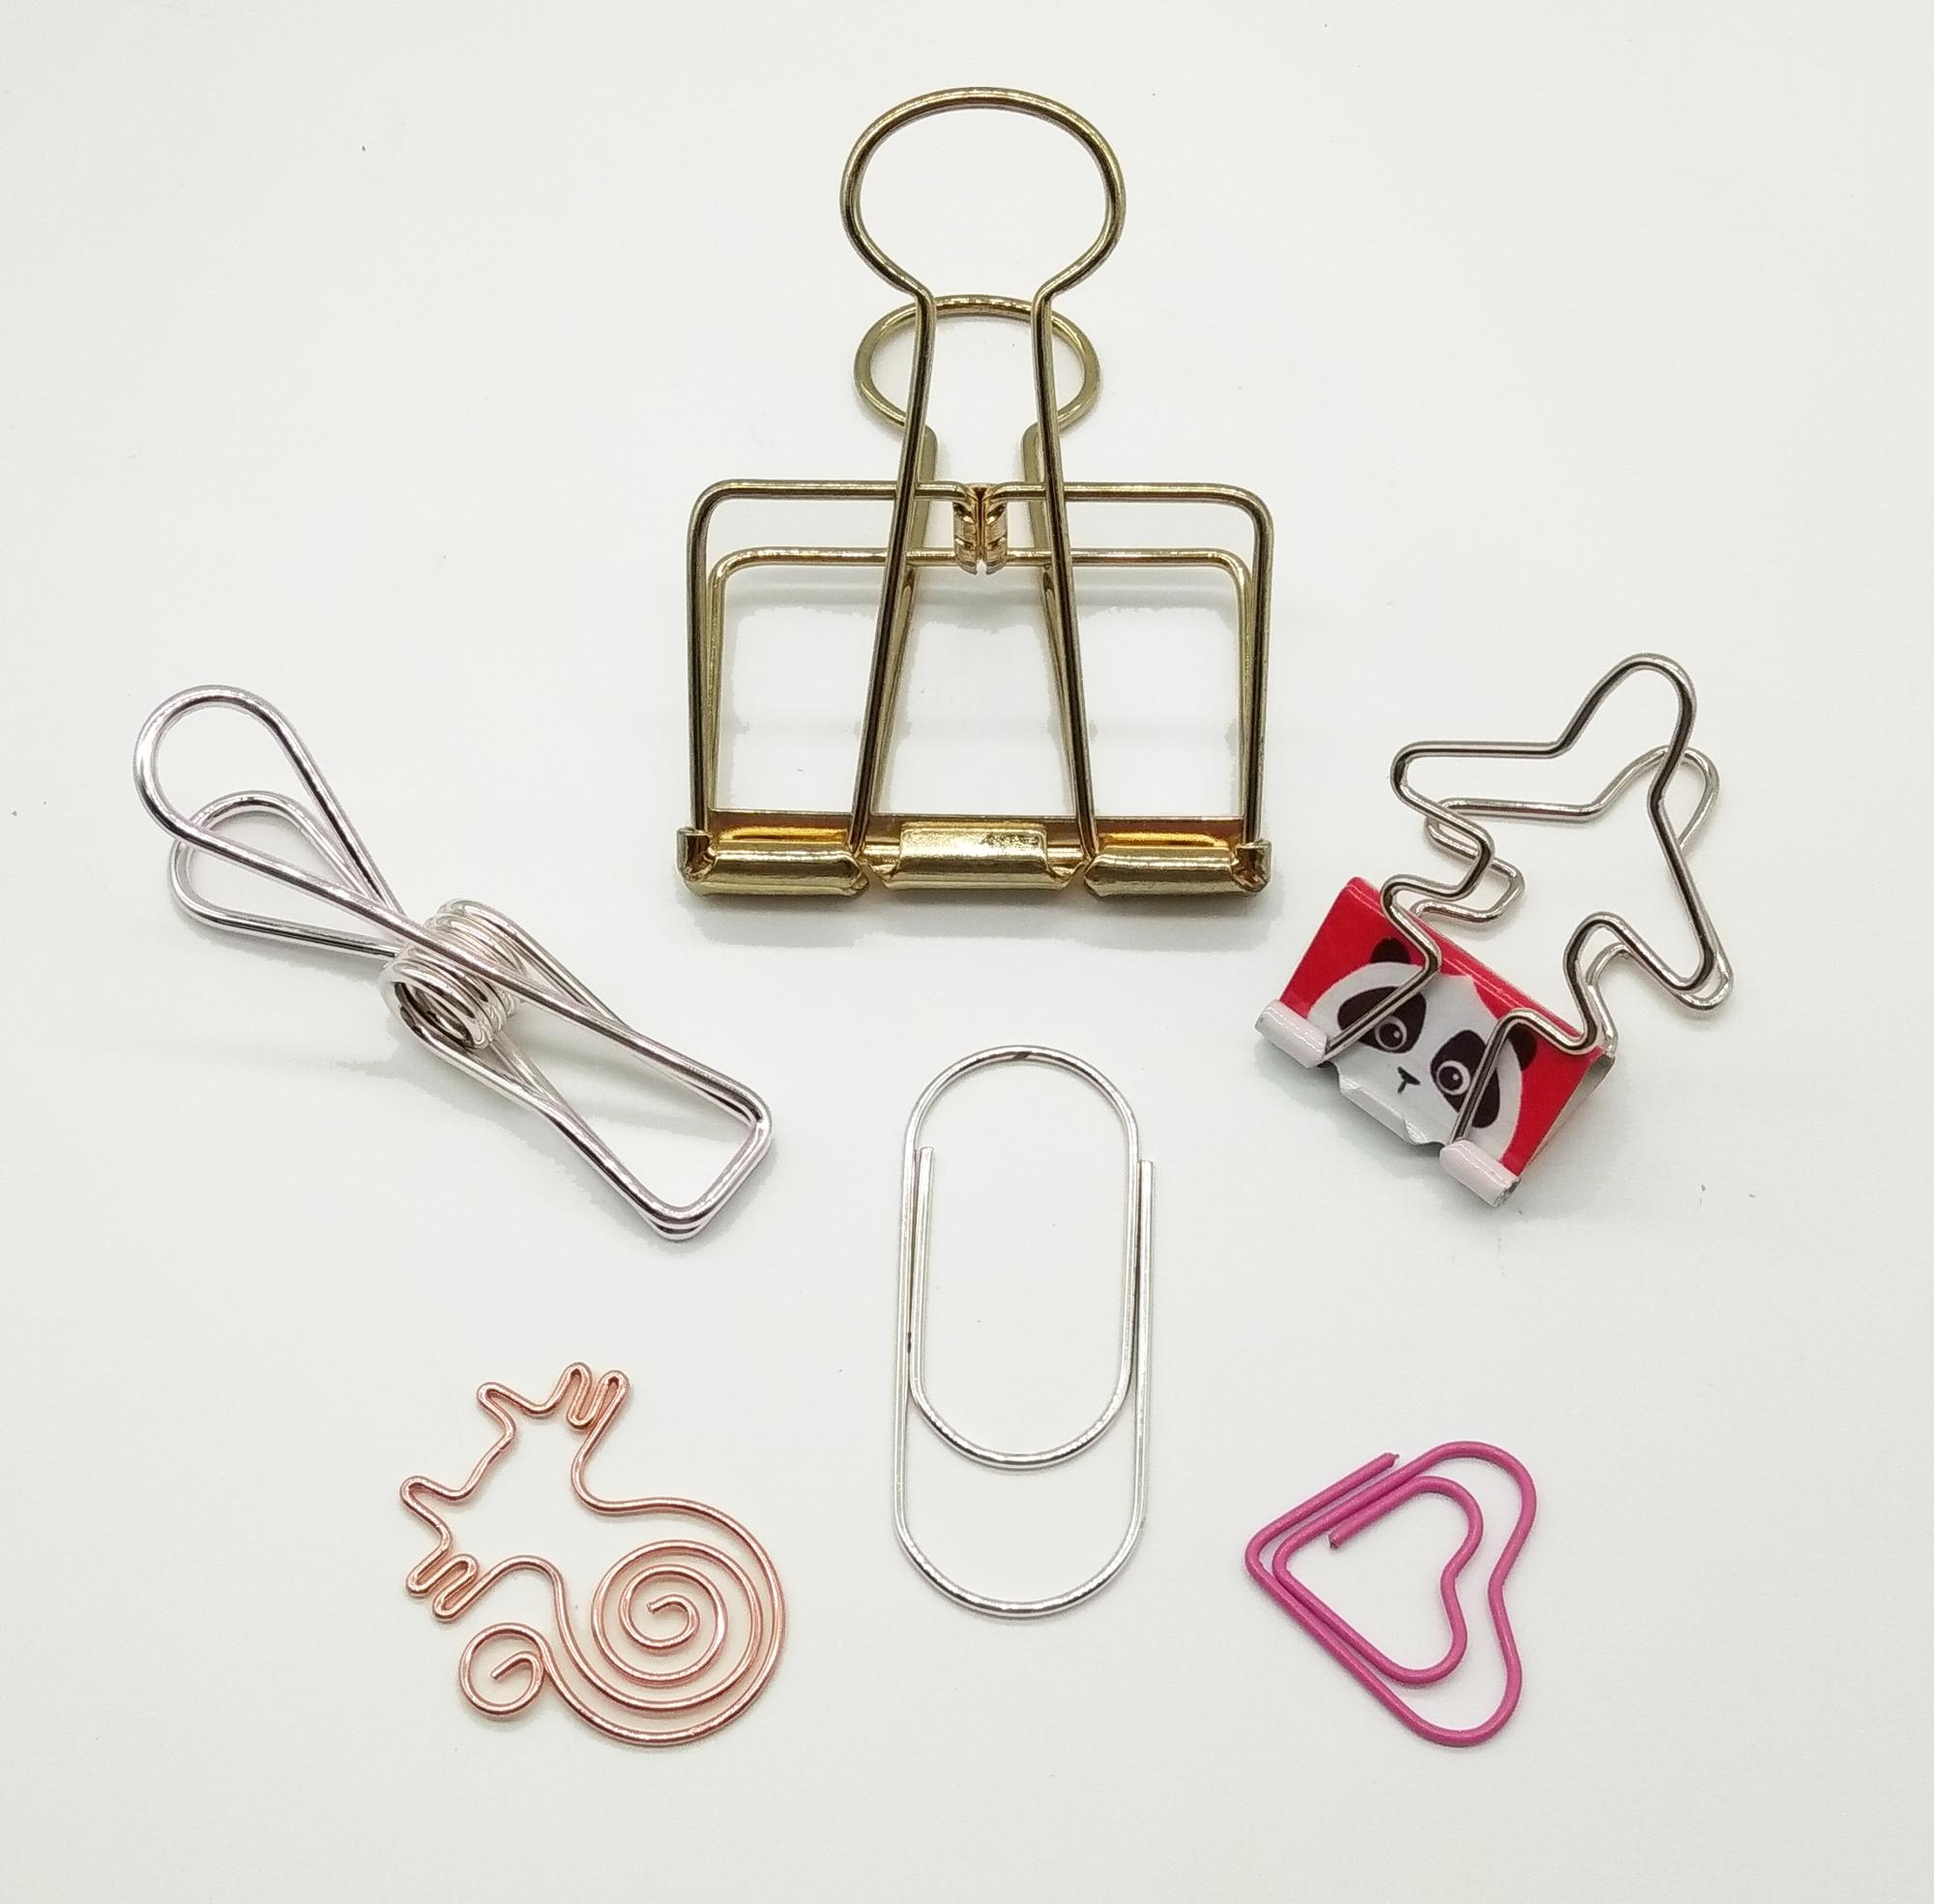 Cheap Wholesale Creative Metal Hollow Binder Paper Clip